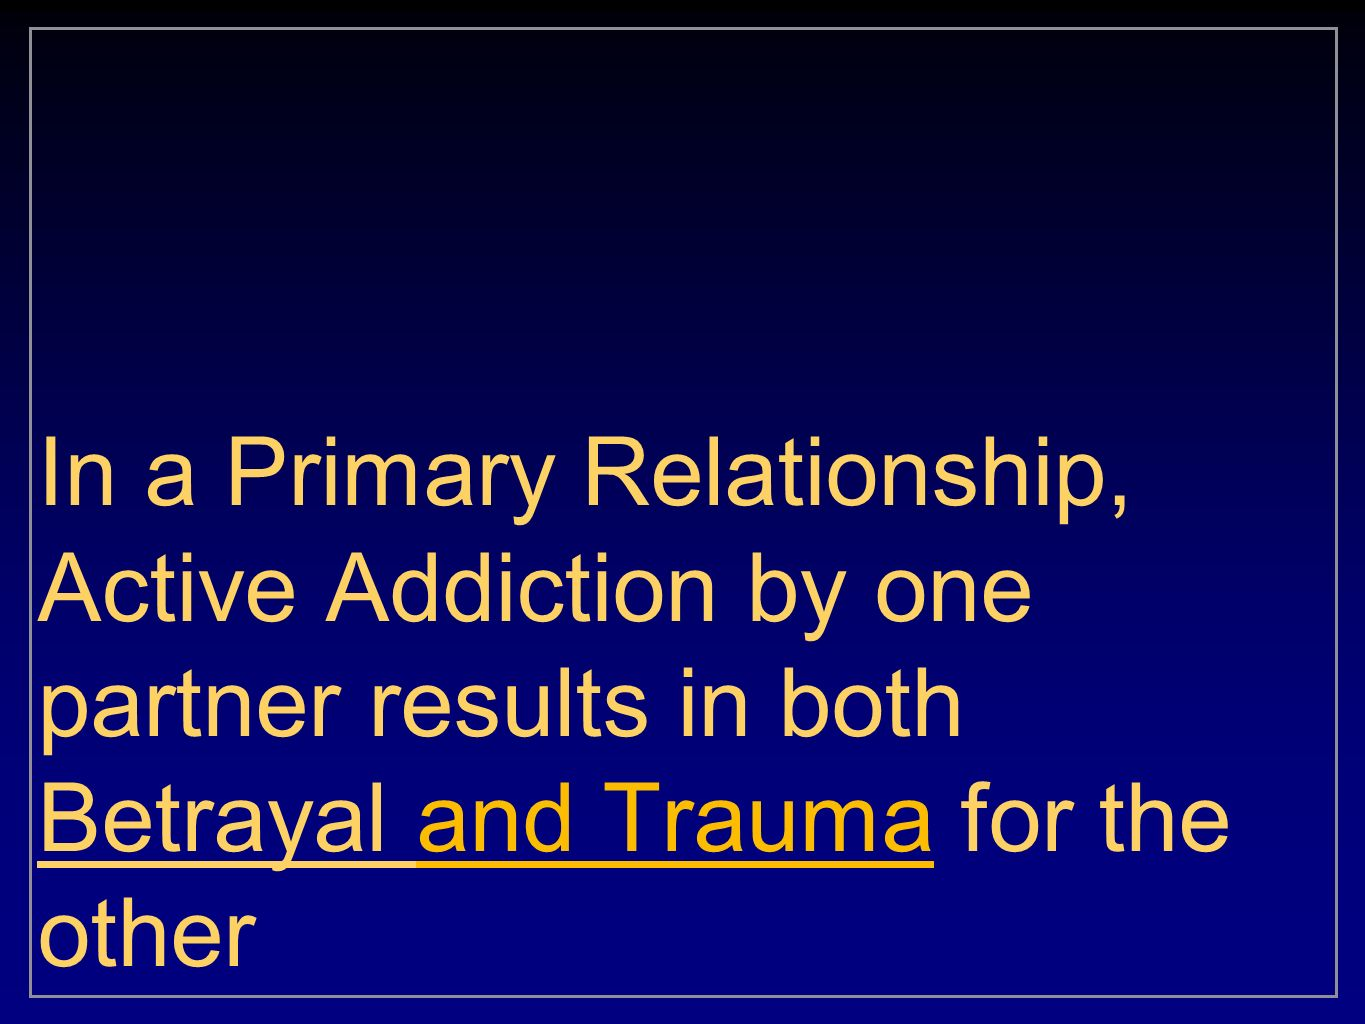 In a Primary Relationship, Active Addiction by one partner results in both Betrayal and Trauma for the other